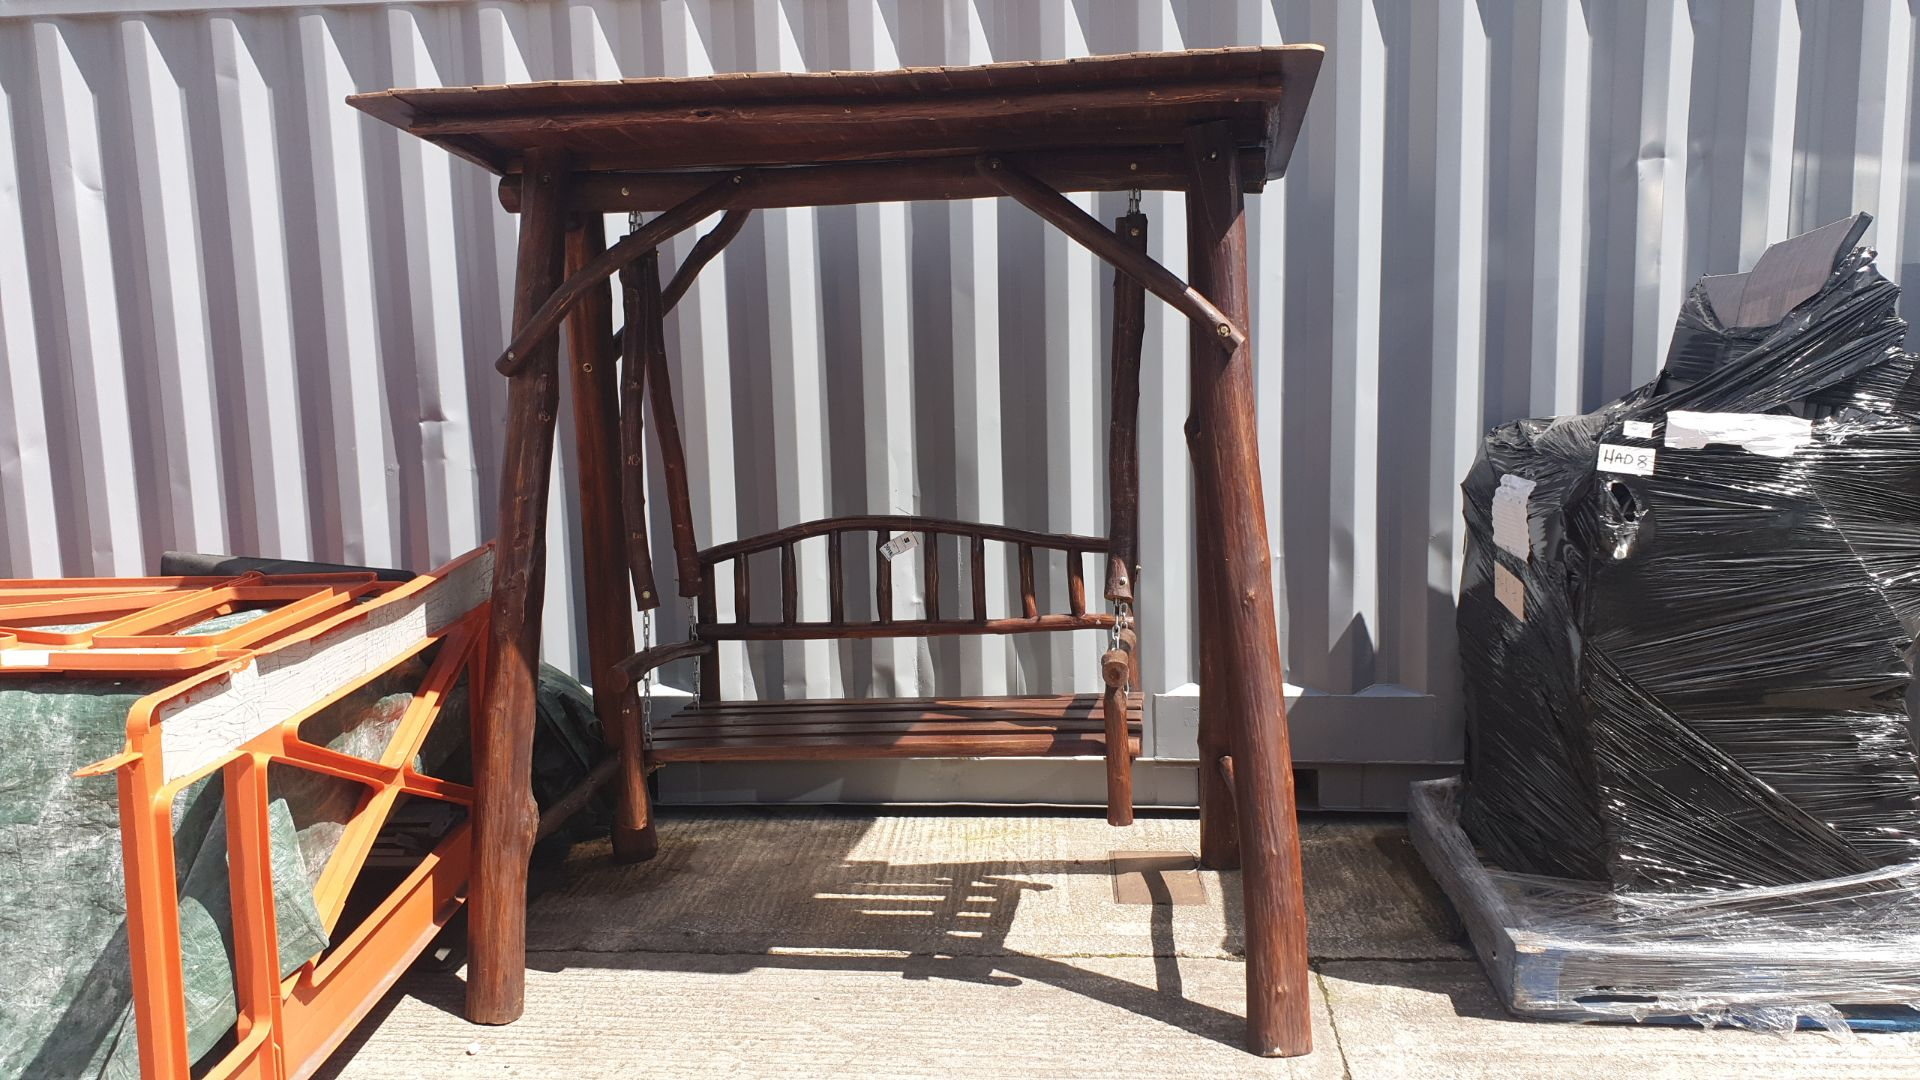 Lot 18 - BRAND NEW SOLID TEAK ROOT WOODEN 2 SEATER SWING 250 X 120 X 200cm RRP £875